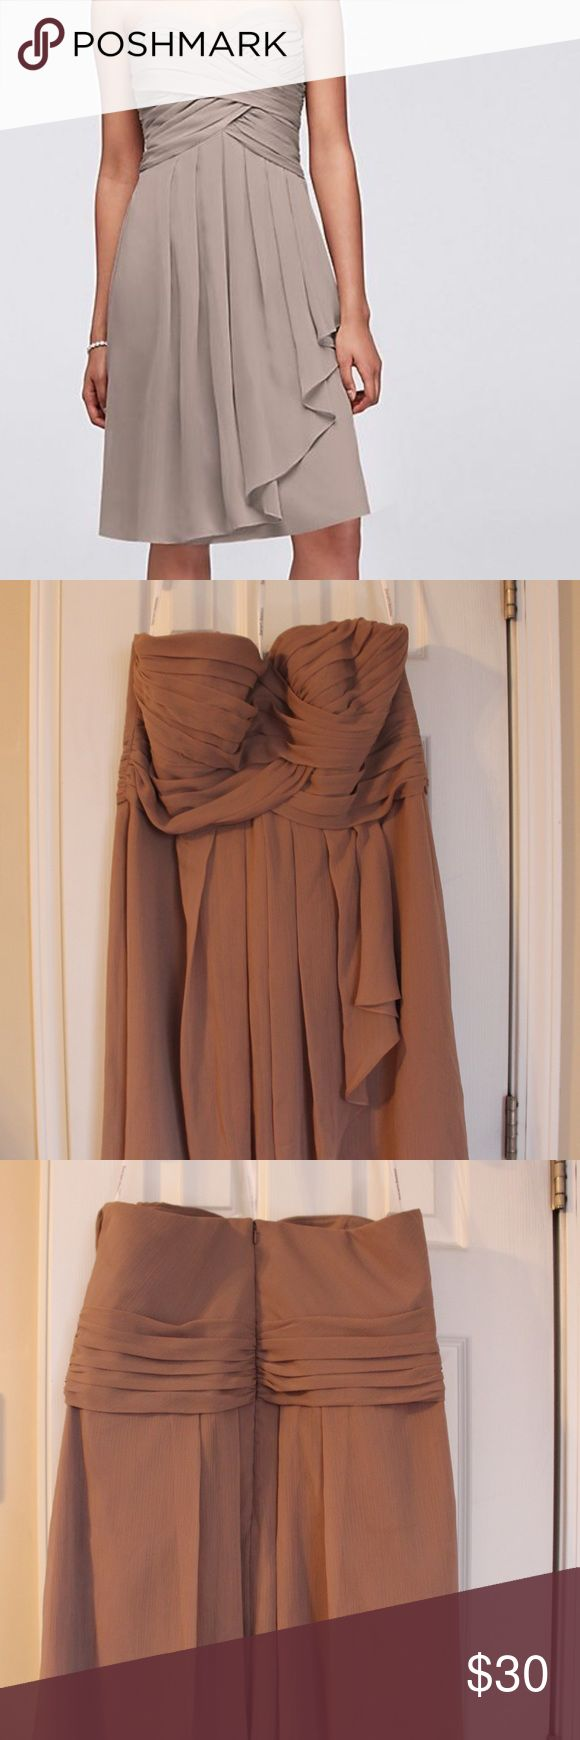 Bridesmaid Dress-DARKER THAN IMAGE Short Crinkle Chiffon Dress with Front Cascade- Color Latte from David's Bridal. Worn once. Very comfortable! David's Bridal Dresses Wedding